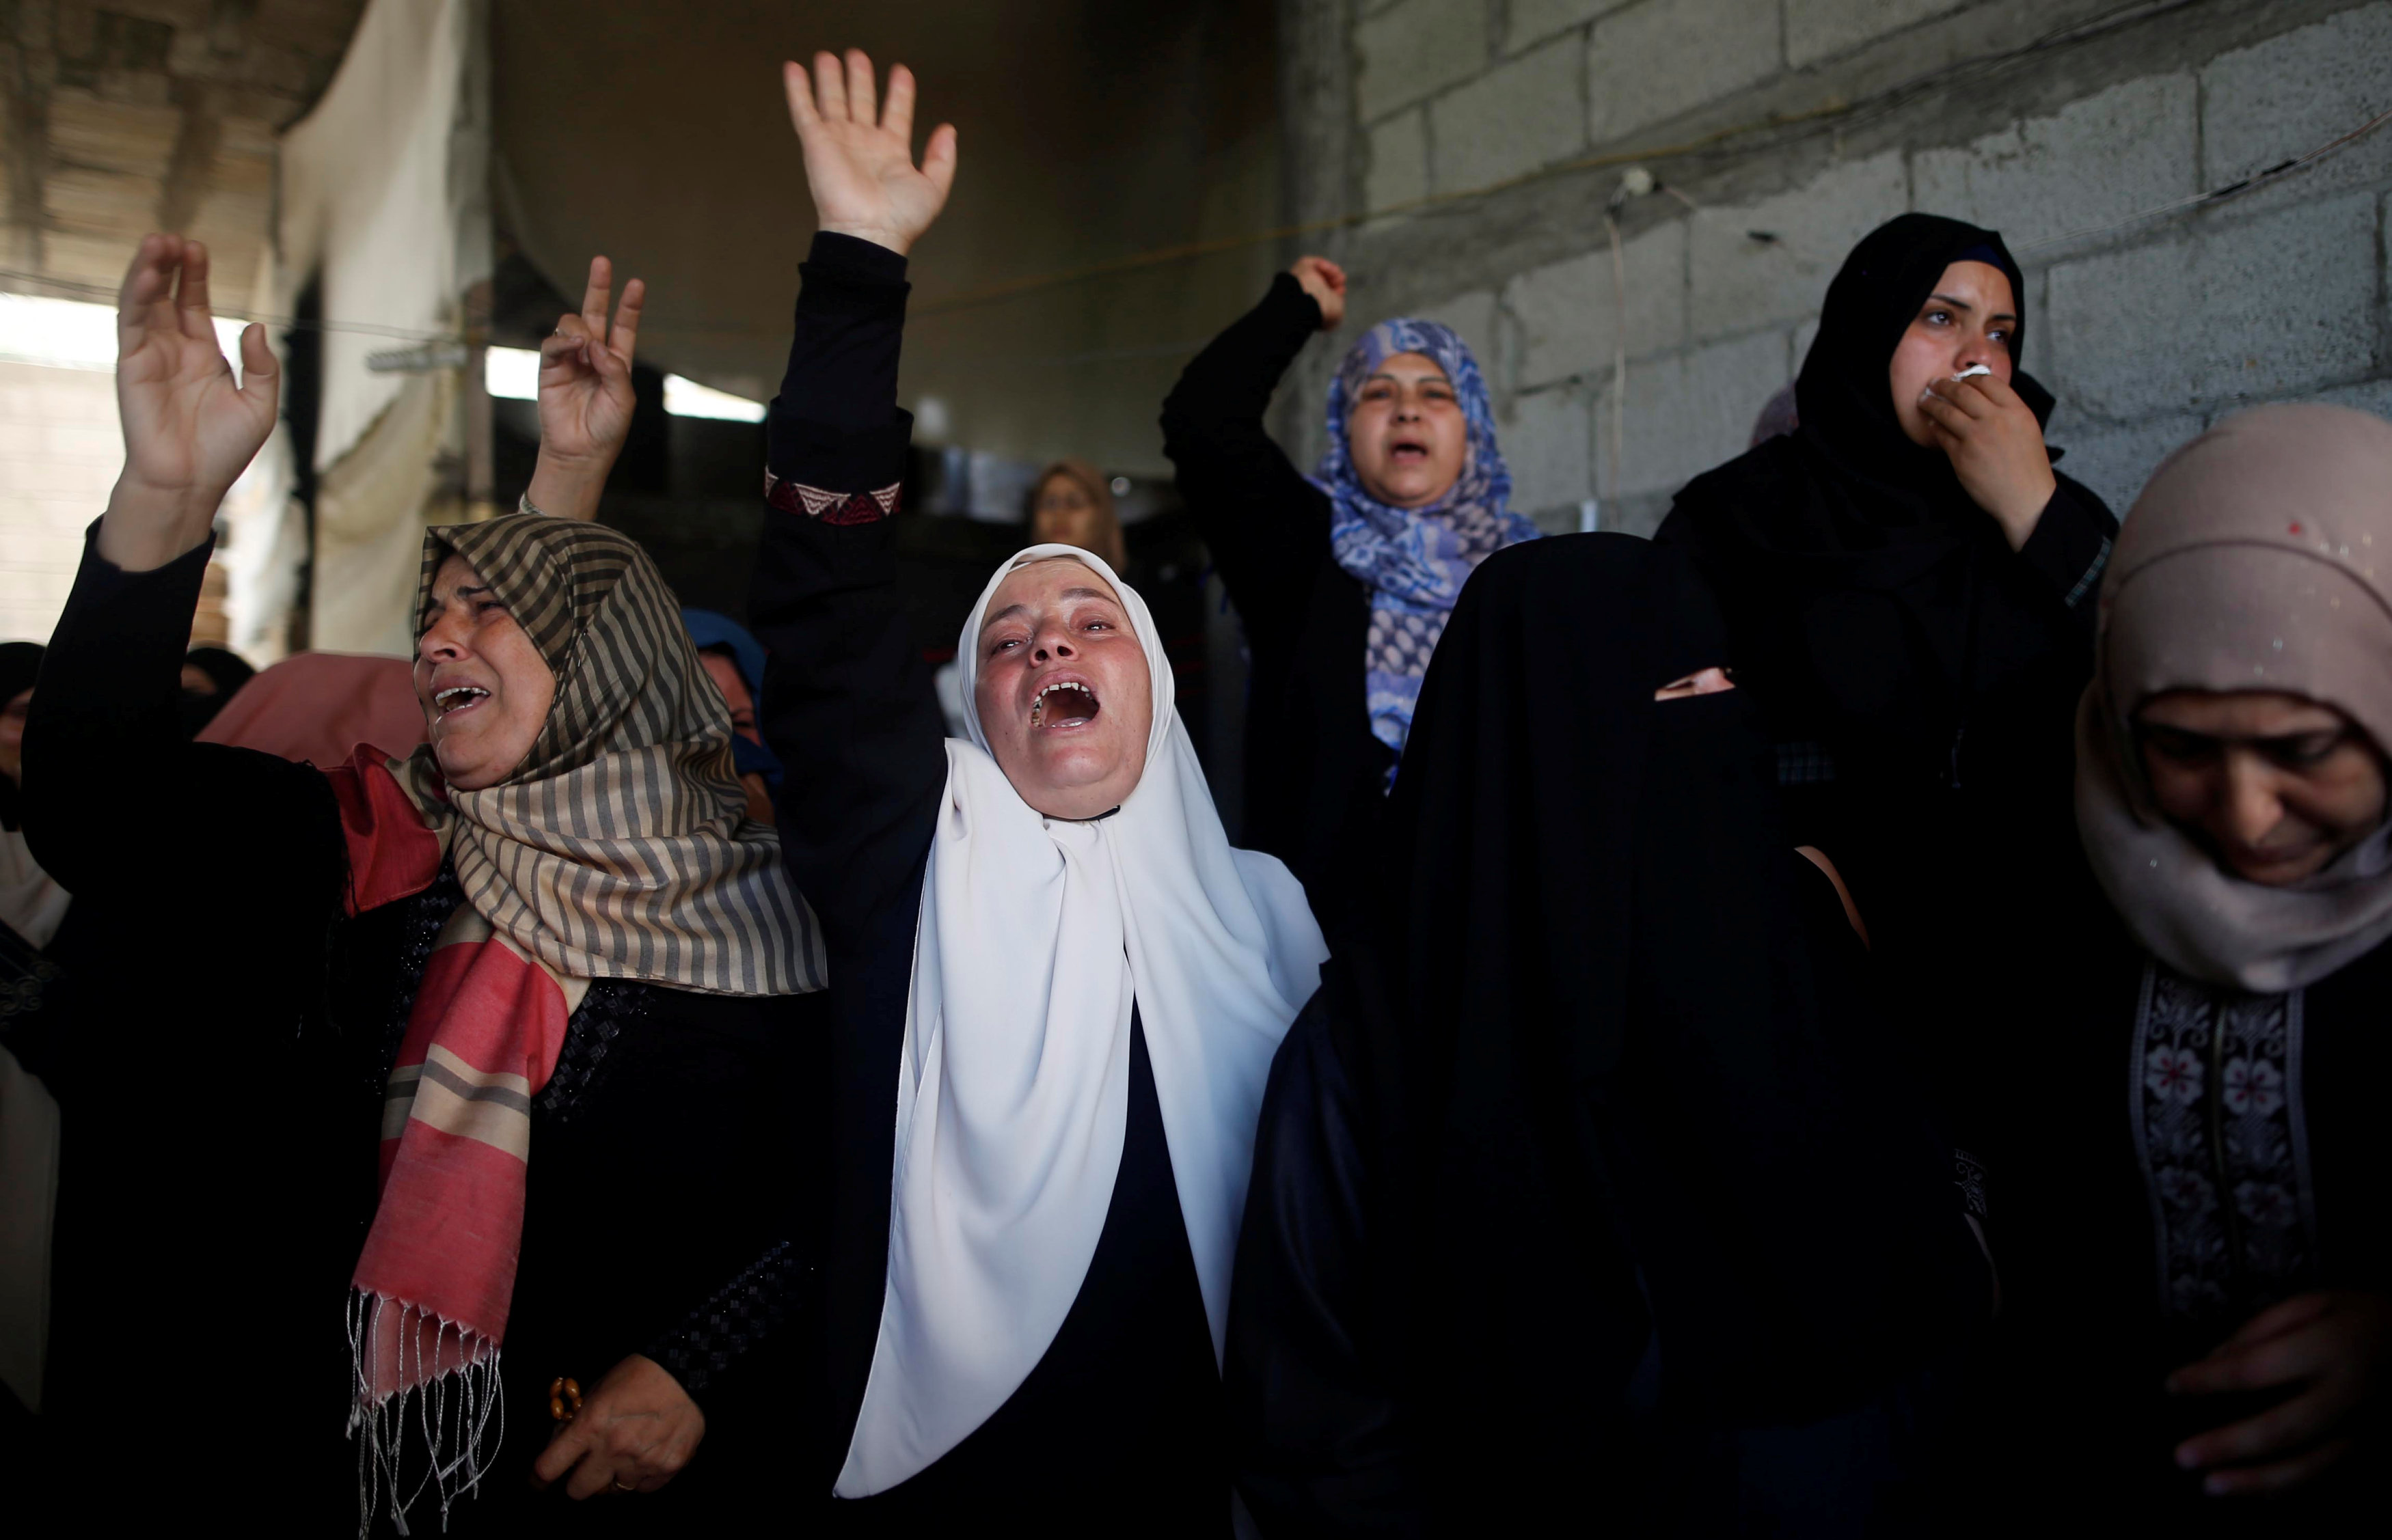 Hamas Scaled Back Gaza Protests Due to Egyptian Pressure: Israel